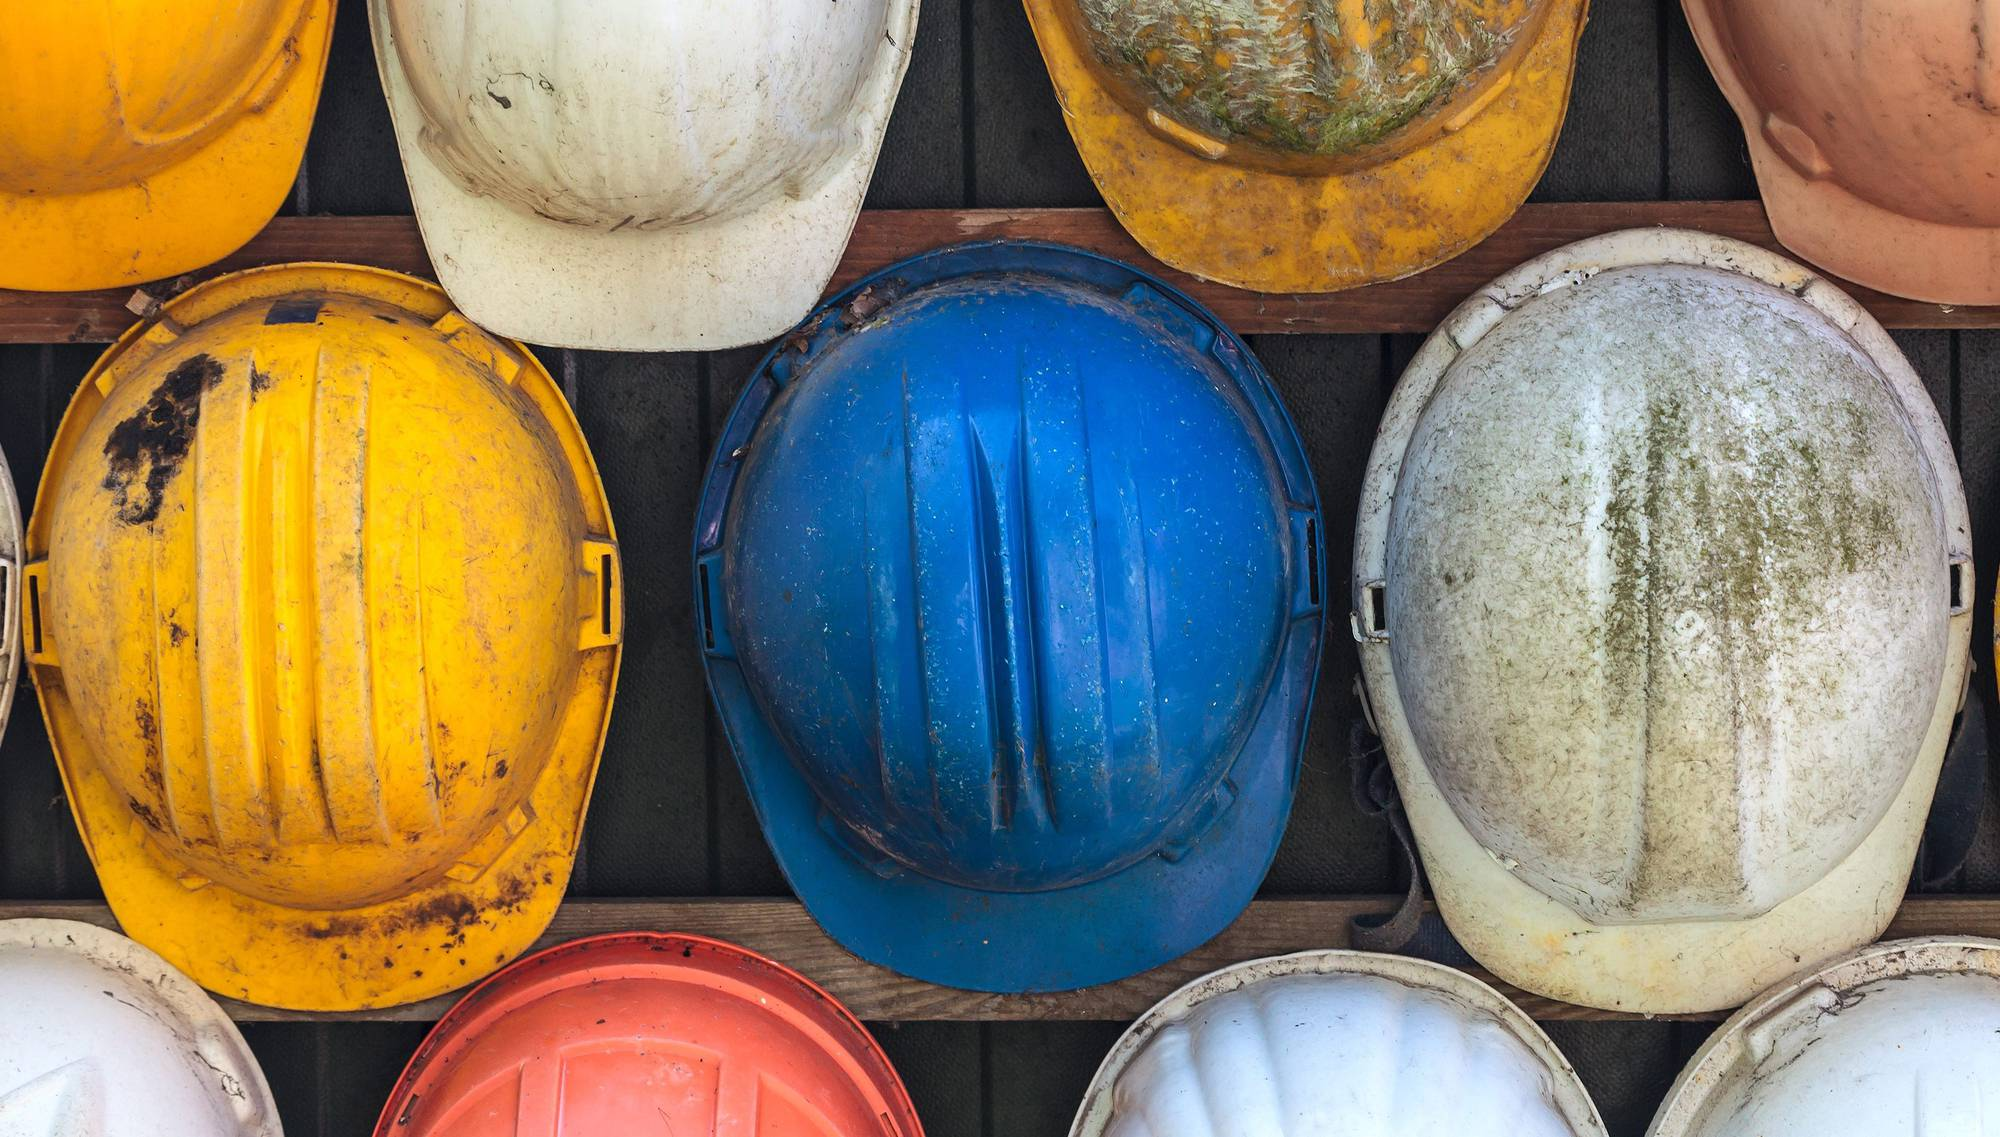 Increase in Number of Fatal and Nonfatal Injuries For Construction Workers in 2018